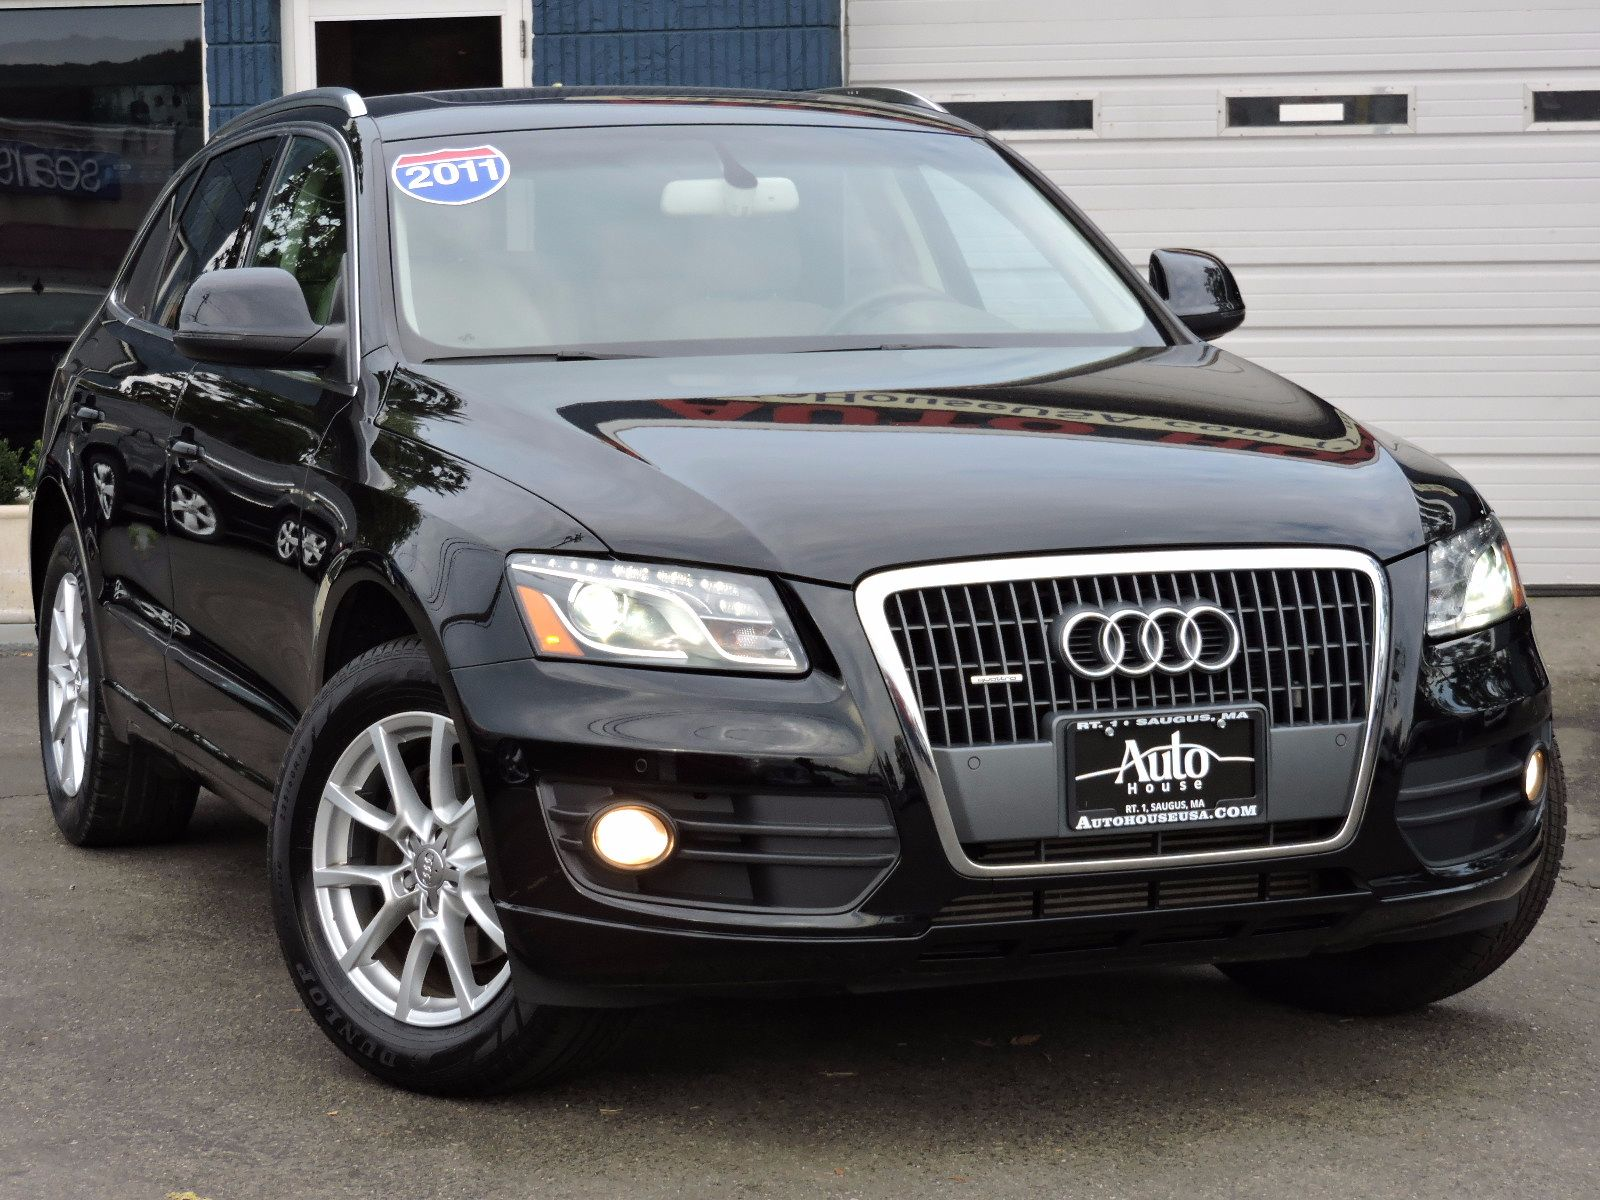 2011 Audi Q5 Premium Plus - 2.0T - Quattro - All Wheel Drive - Navigation